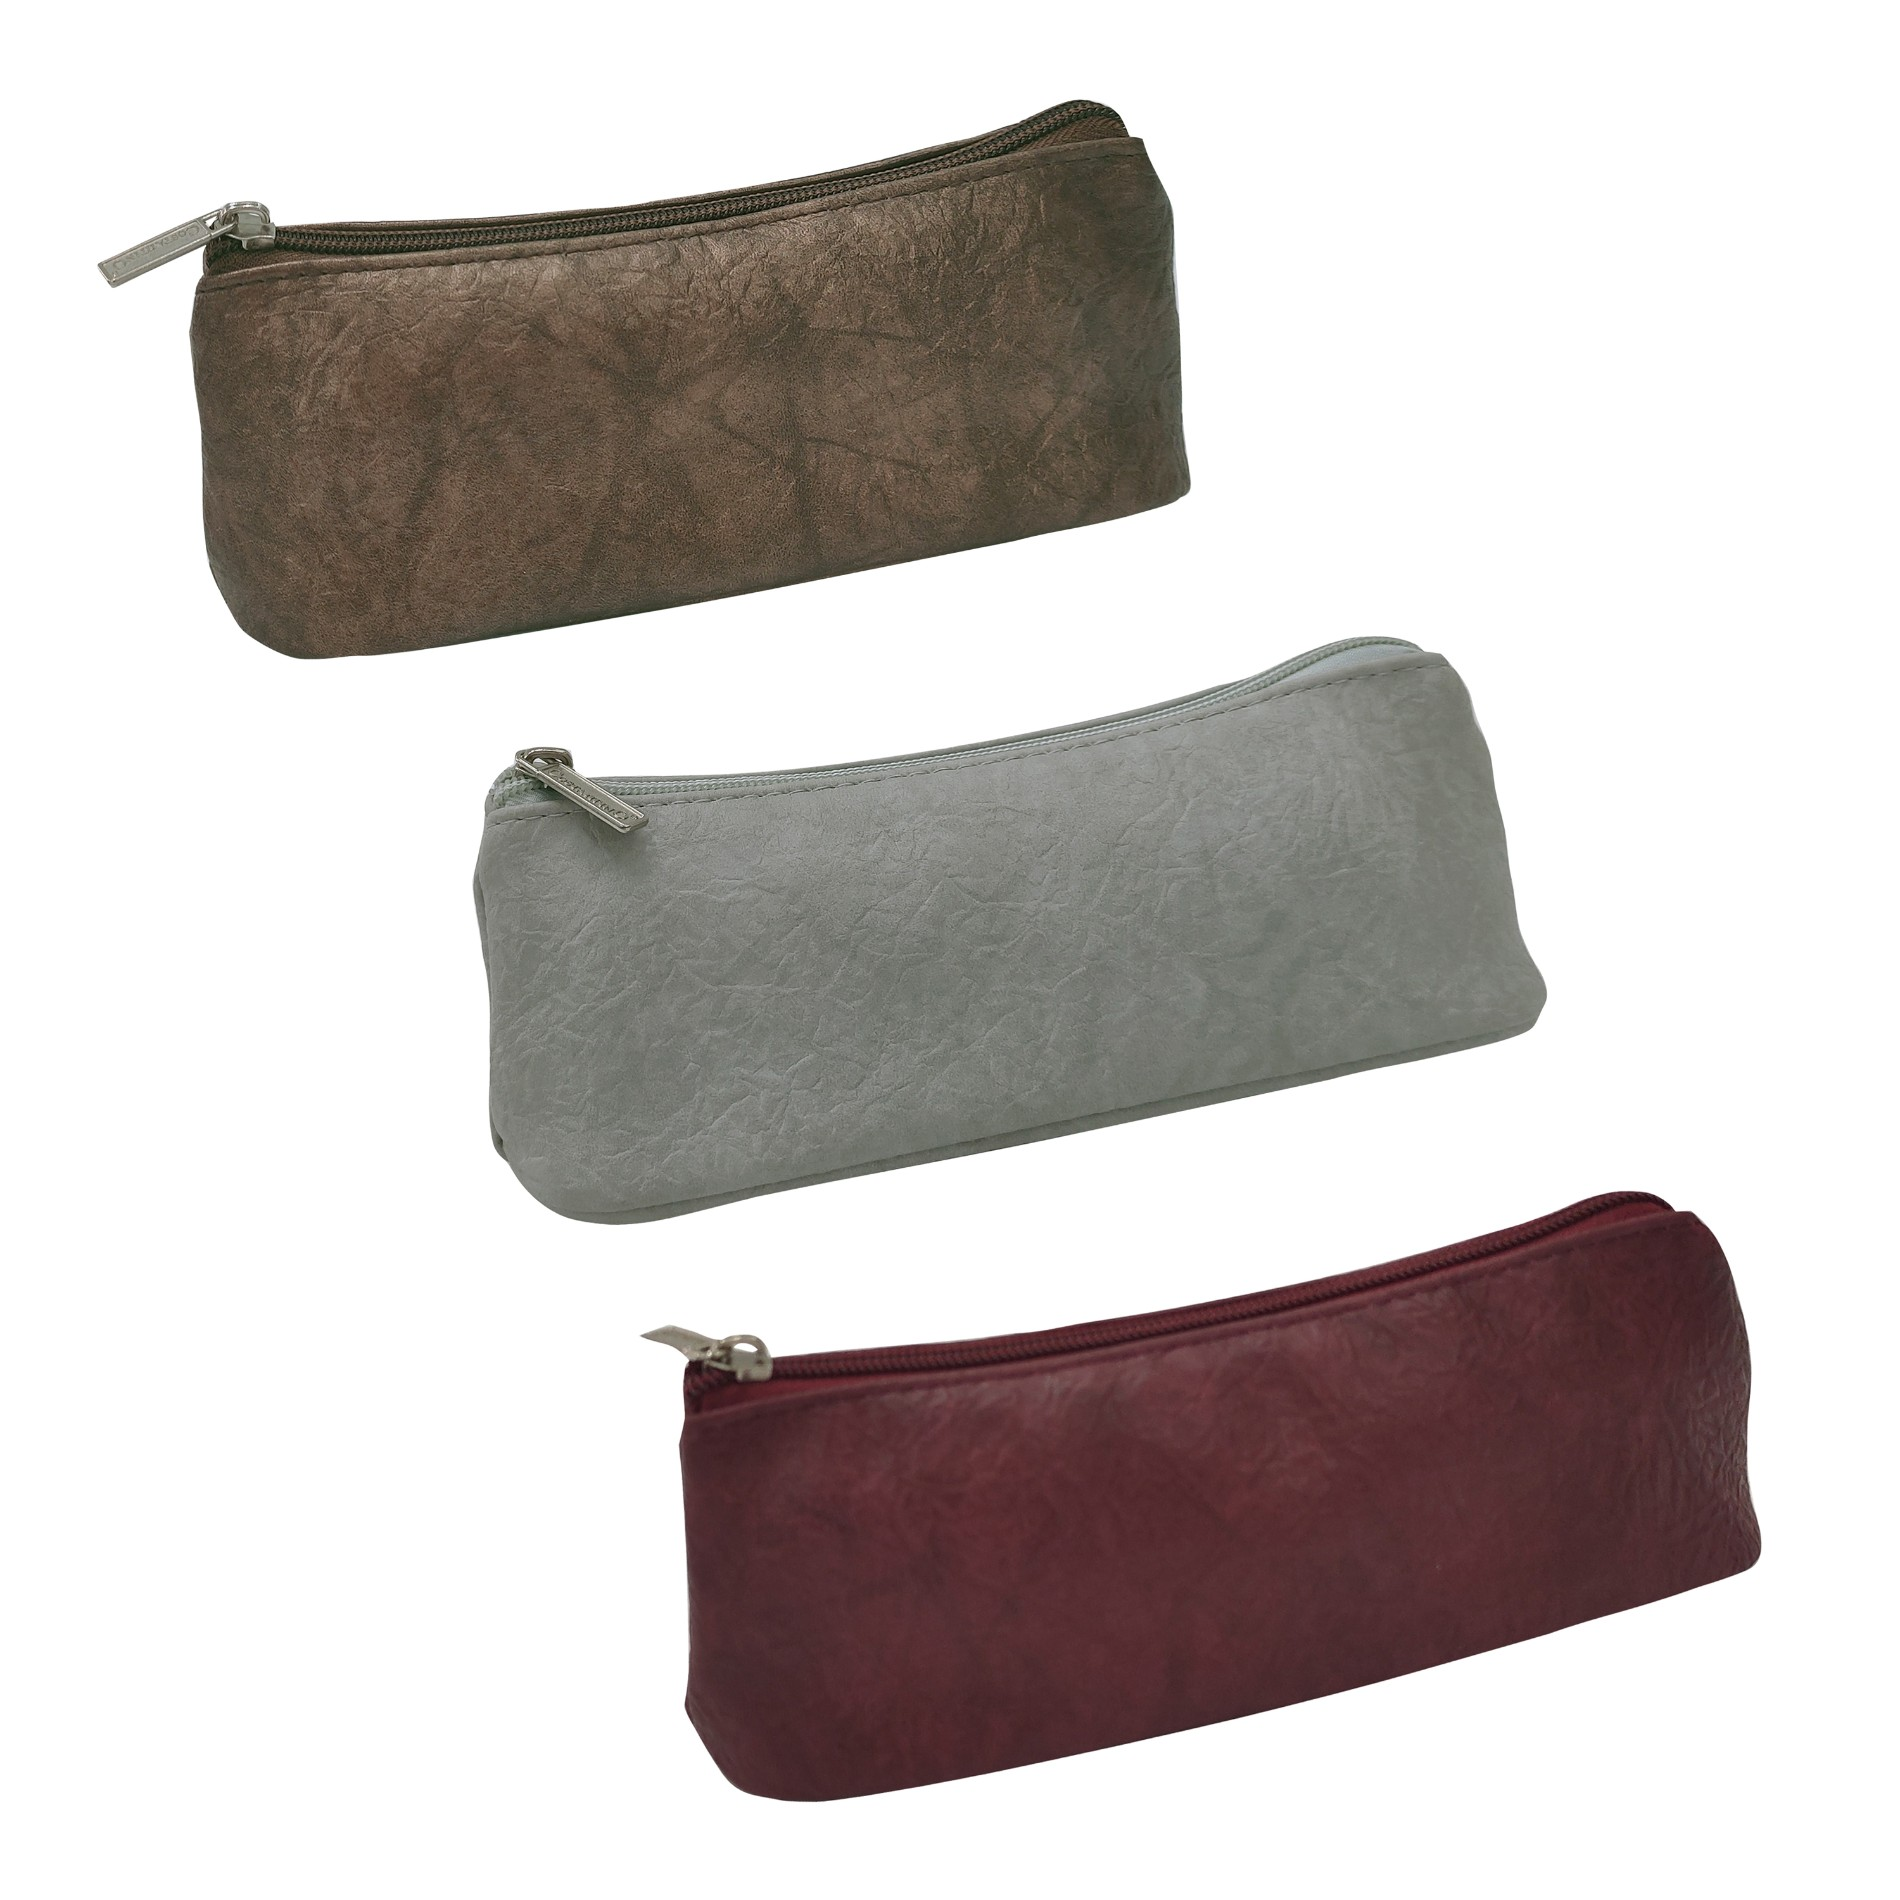 personalized leather and magnetic pencil case Manufacturers, personalized leather and magnetic pencil case Factory, Supply personalized leather and magnetic pencil case